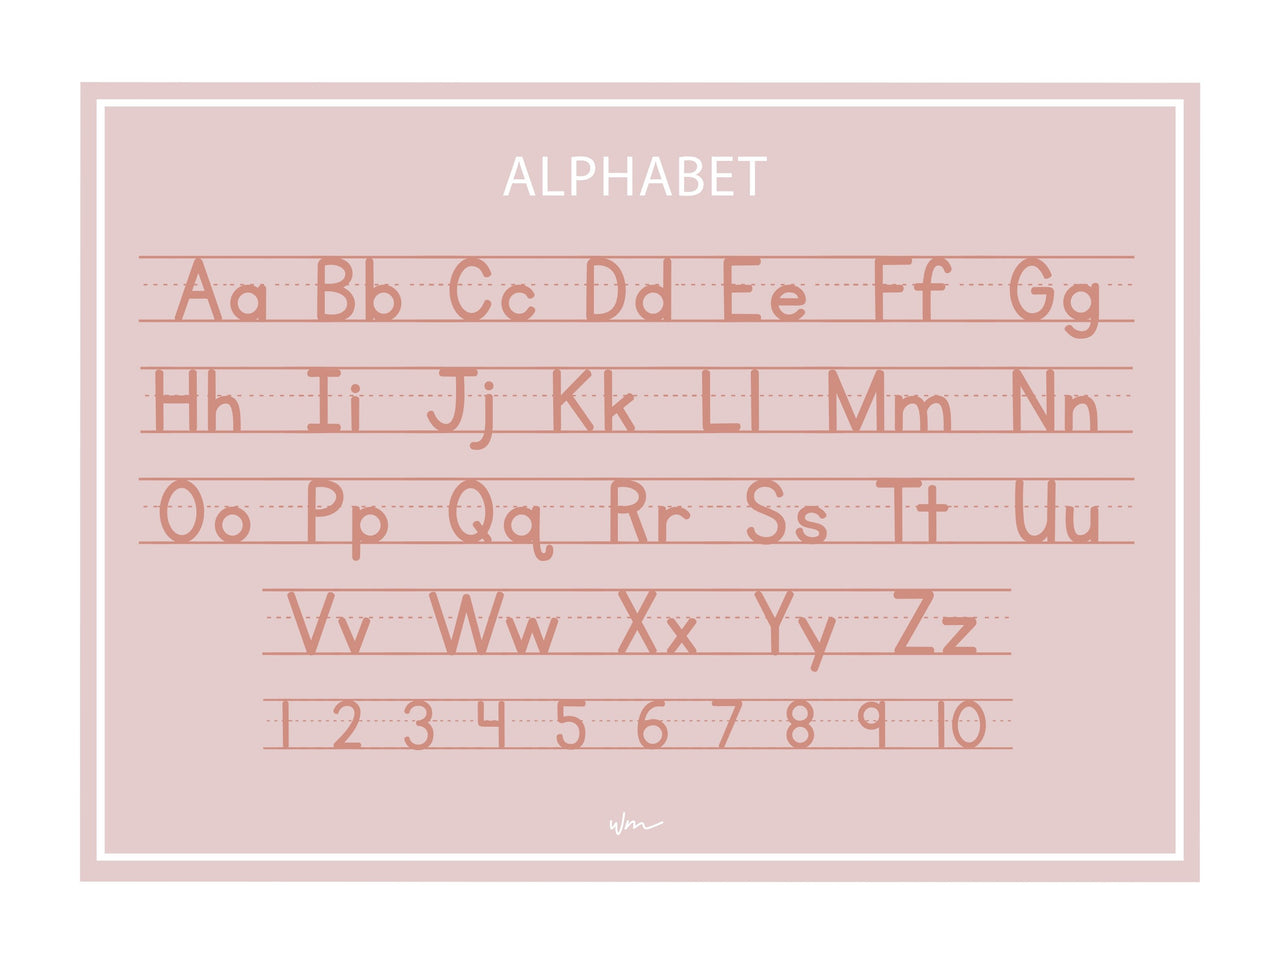 Alphabet block letters poster decal - Pink/Minimalist